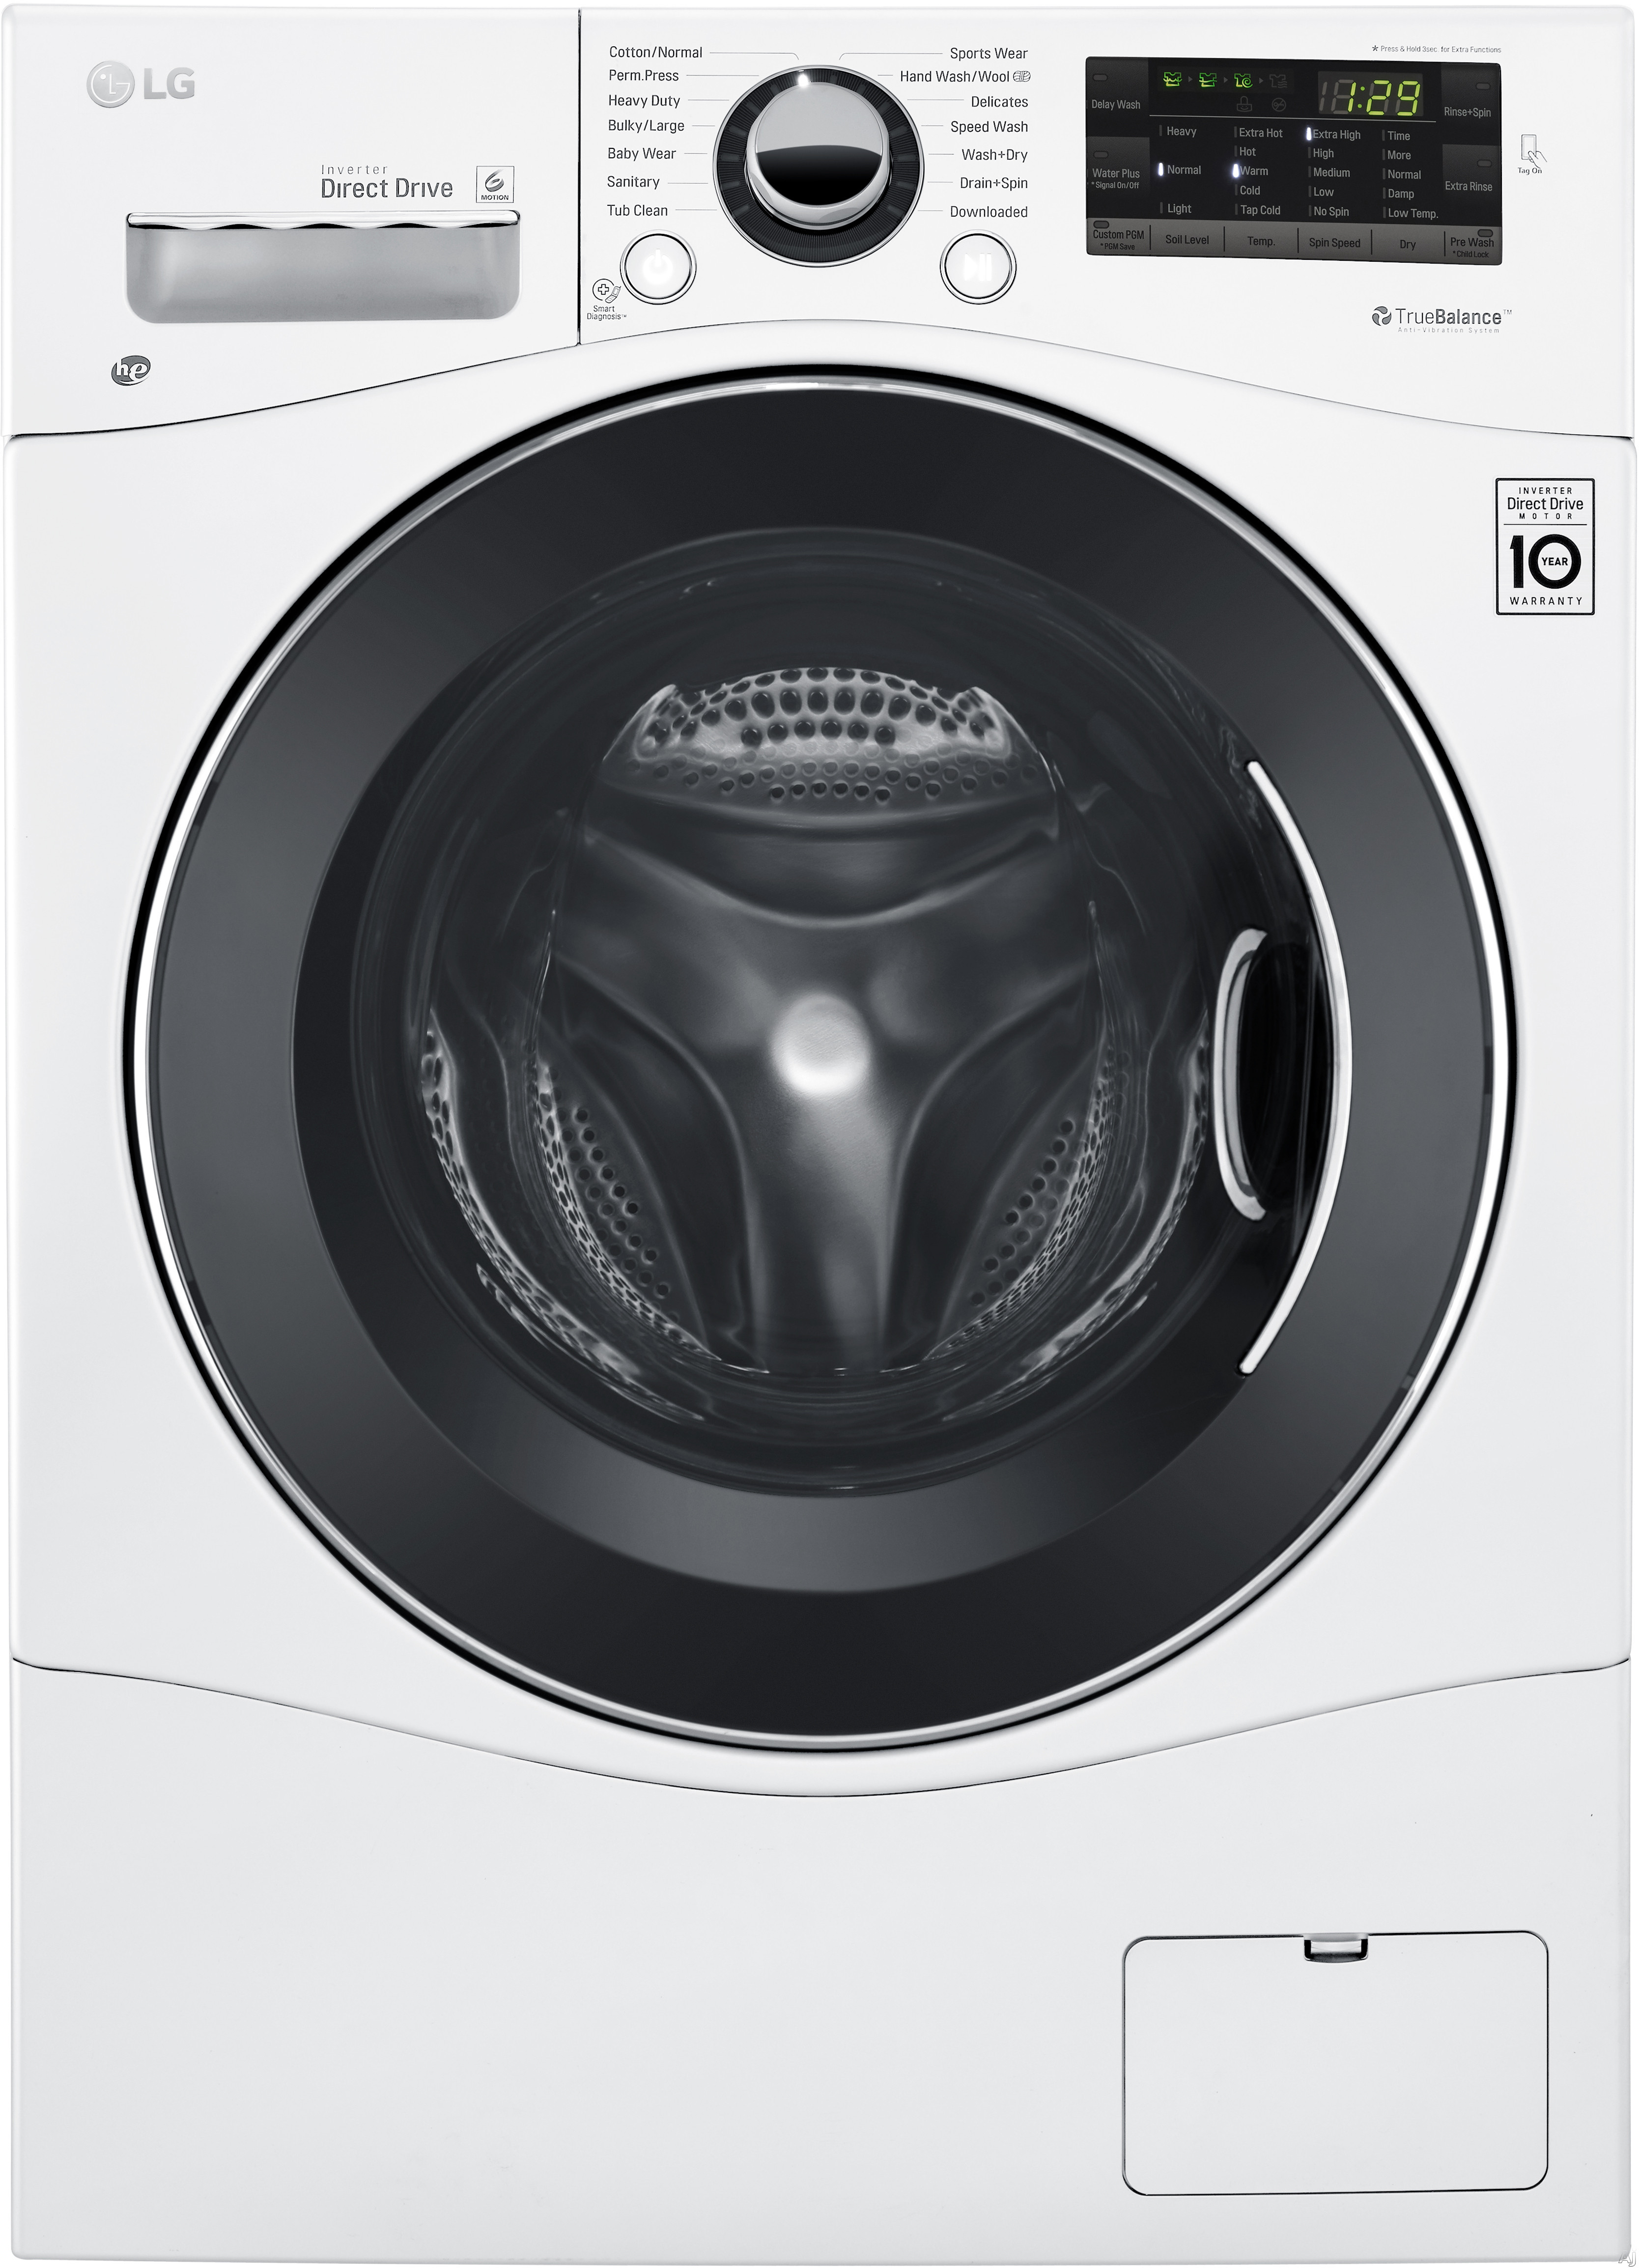 LG WM3488HW 24 Inch Ventless Electric Washer/Dryer Combo with 2.3 cu. ft Capacity, 14 Wash Cycles, 10 Wash Options, Steam, Sanitary Cycle, 1,400 RPM, NFC Tag On Technology, 4 Tray Dispenser, LoadSense and LoDecibel Quiet Operation: White